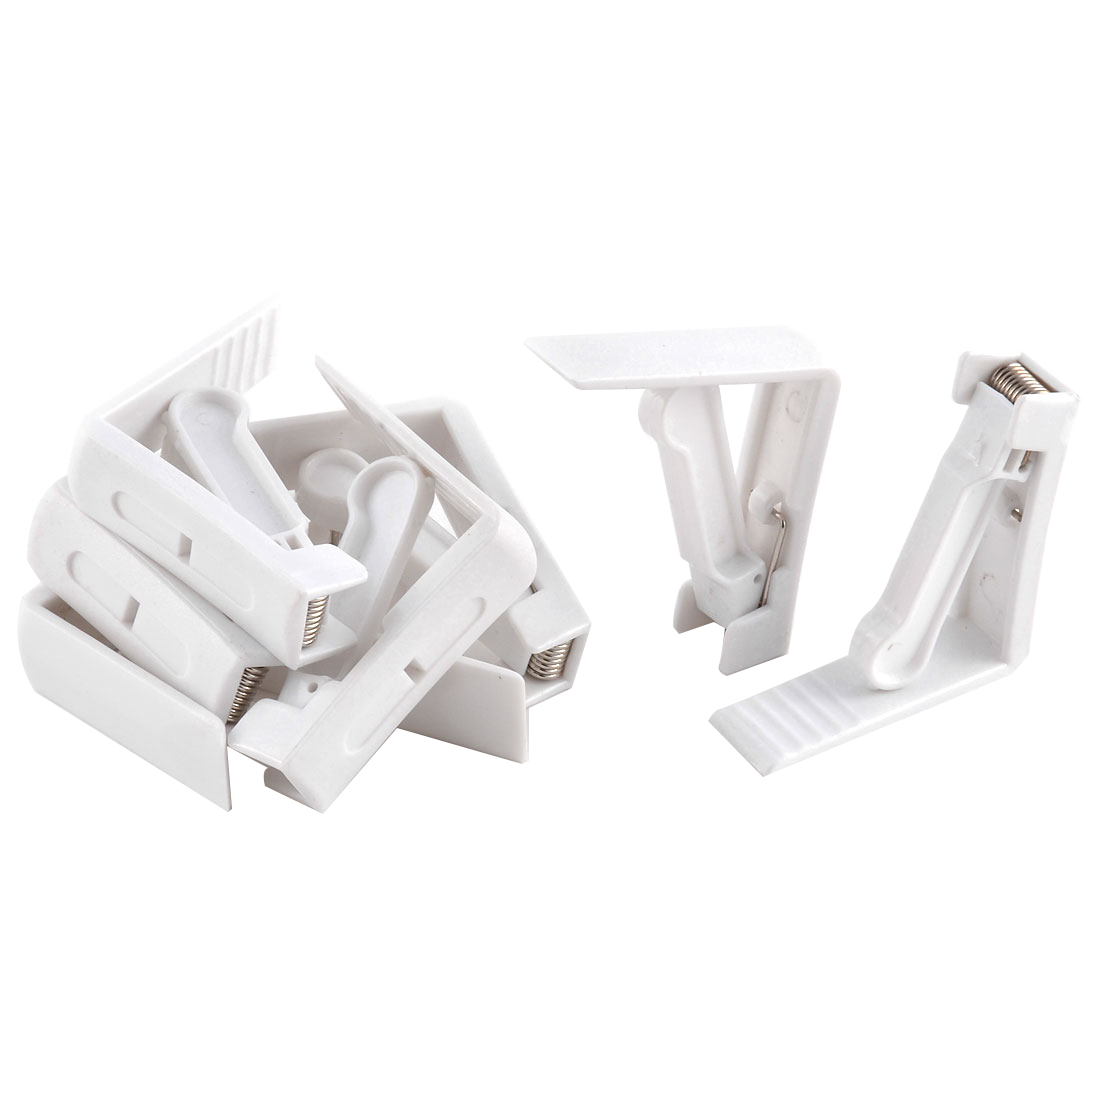 Home Party Wedding Banquet Plastic Table Cloth Holder Clip Clamp White 8 Pcs